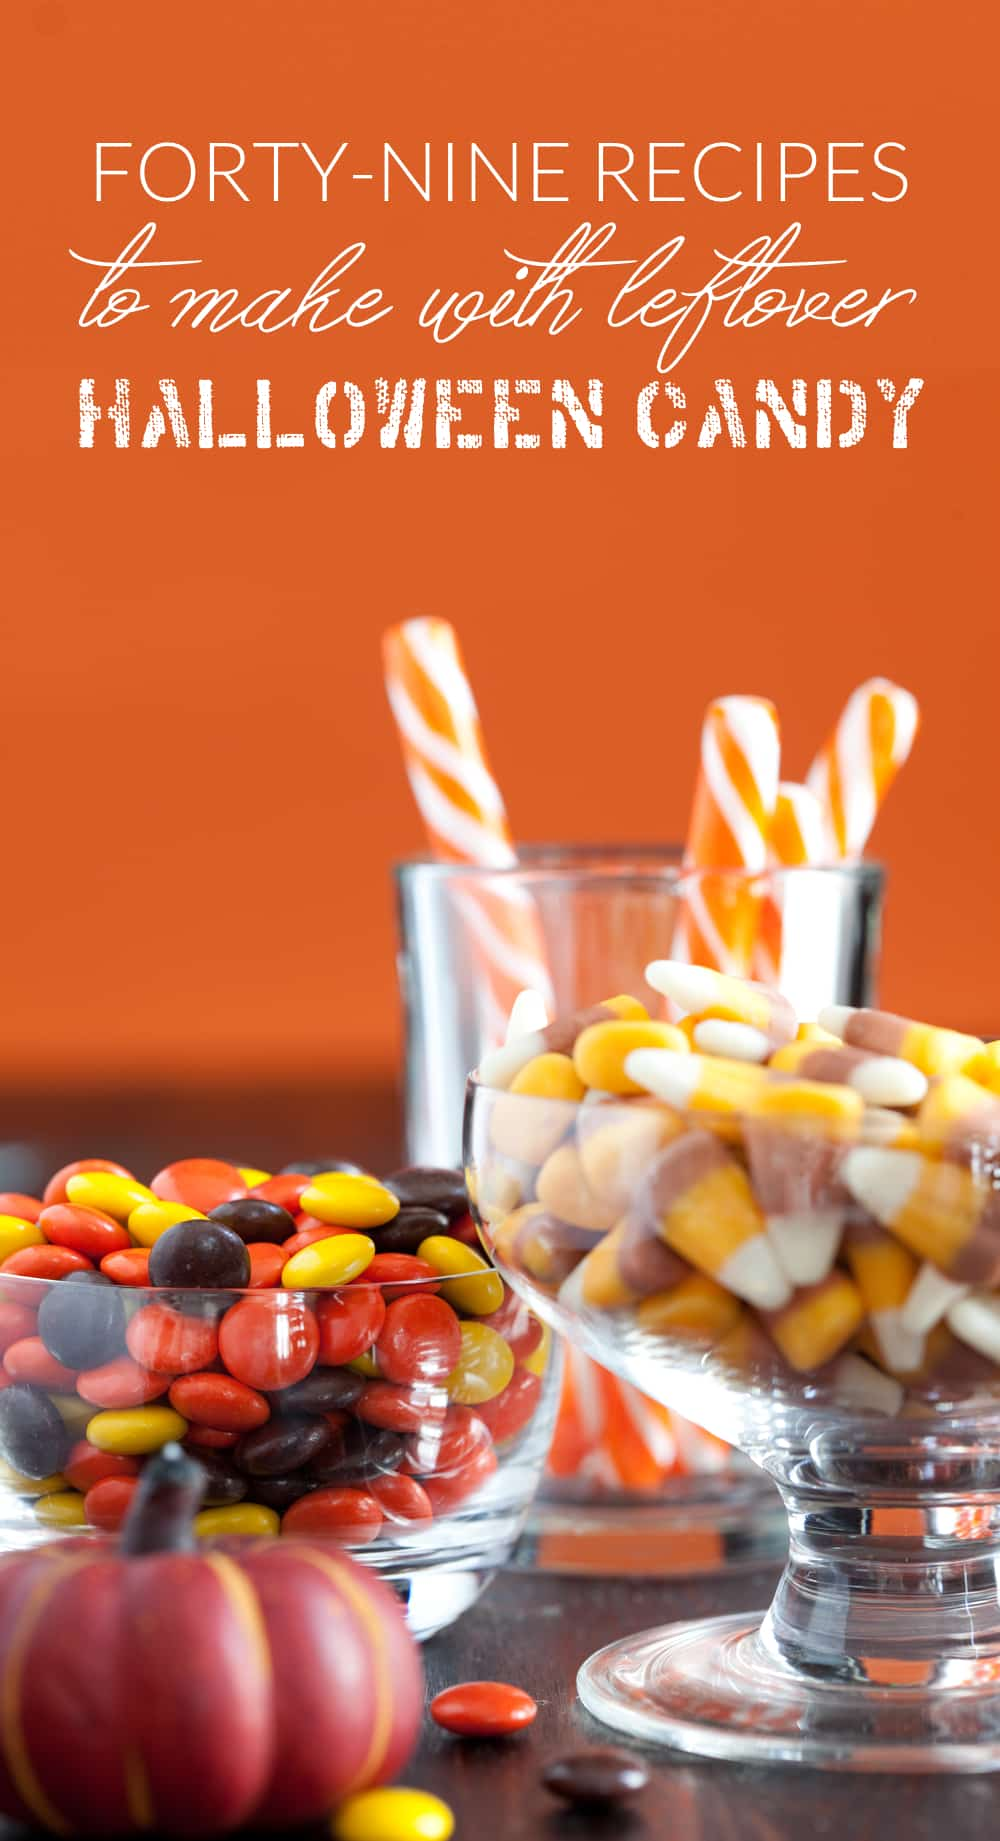 Recipes To Make With Your Leftover Halloween Candy